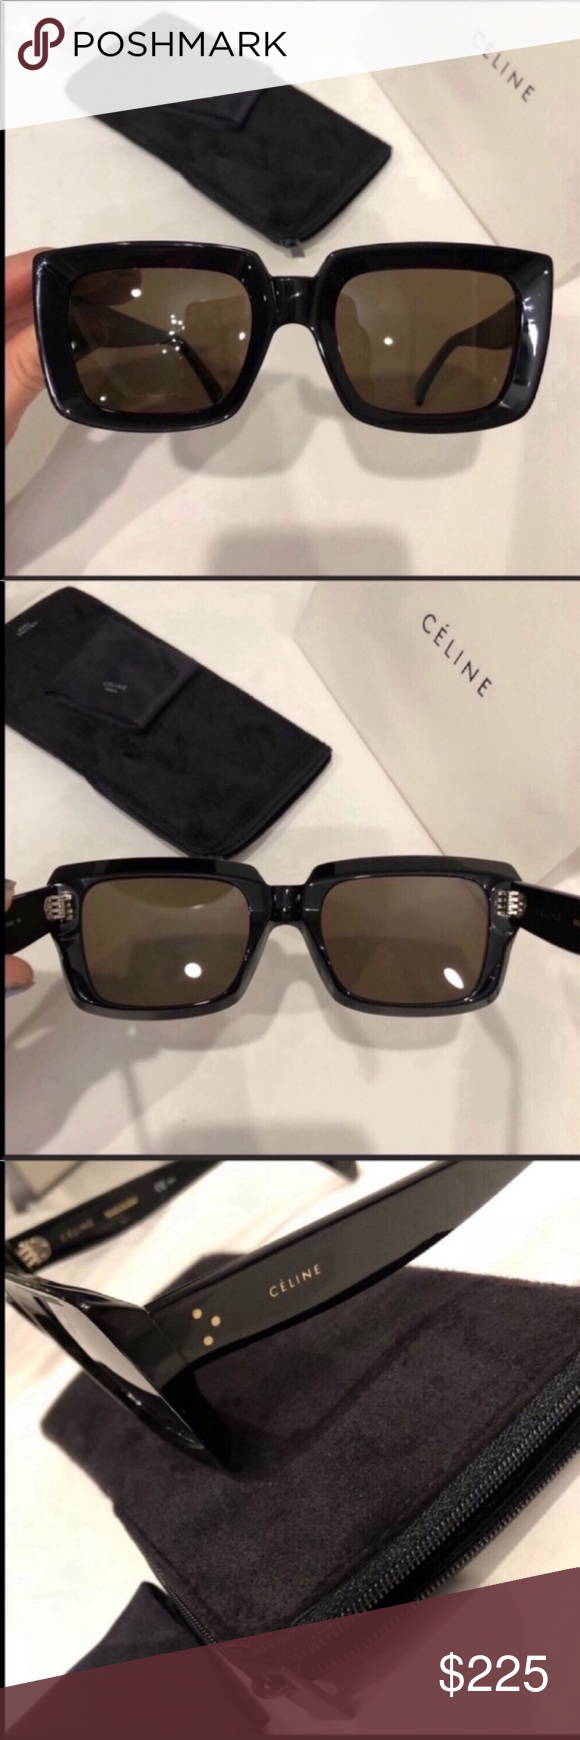 fefe2ffbc76f Celine sunglasses 🕶 Celine Emma black square sunglasses New condition.  100% authentic guaranteed. Includes Celine card, Celine case and cloth.